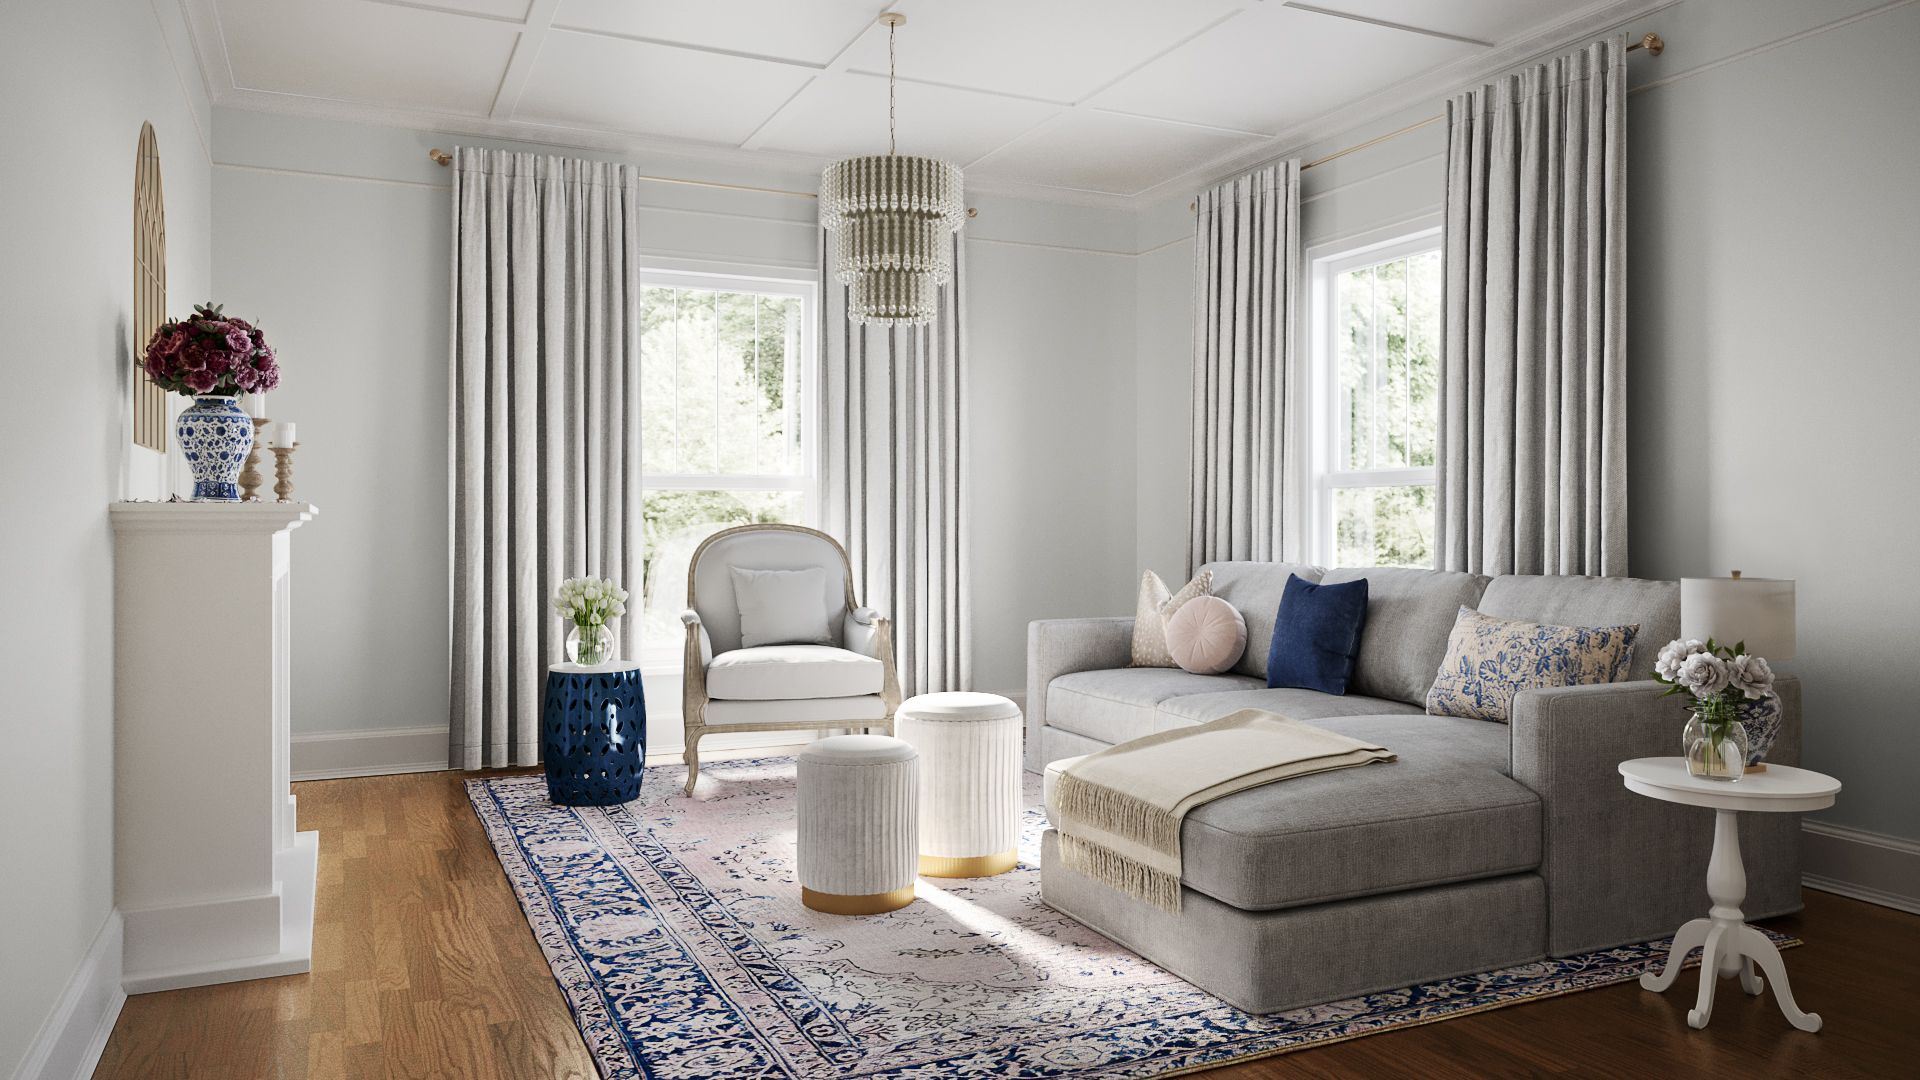 Classic Glam Traditional Preppy Living Room Design By Havenly Interior Designer Natalie In 2021 Preppy Living Room Living Room Designs Interior Design